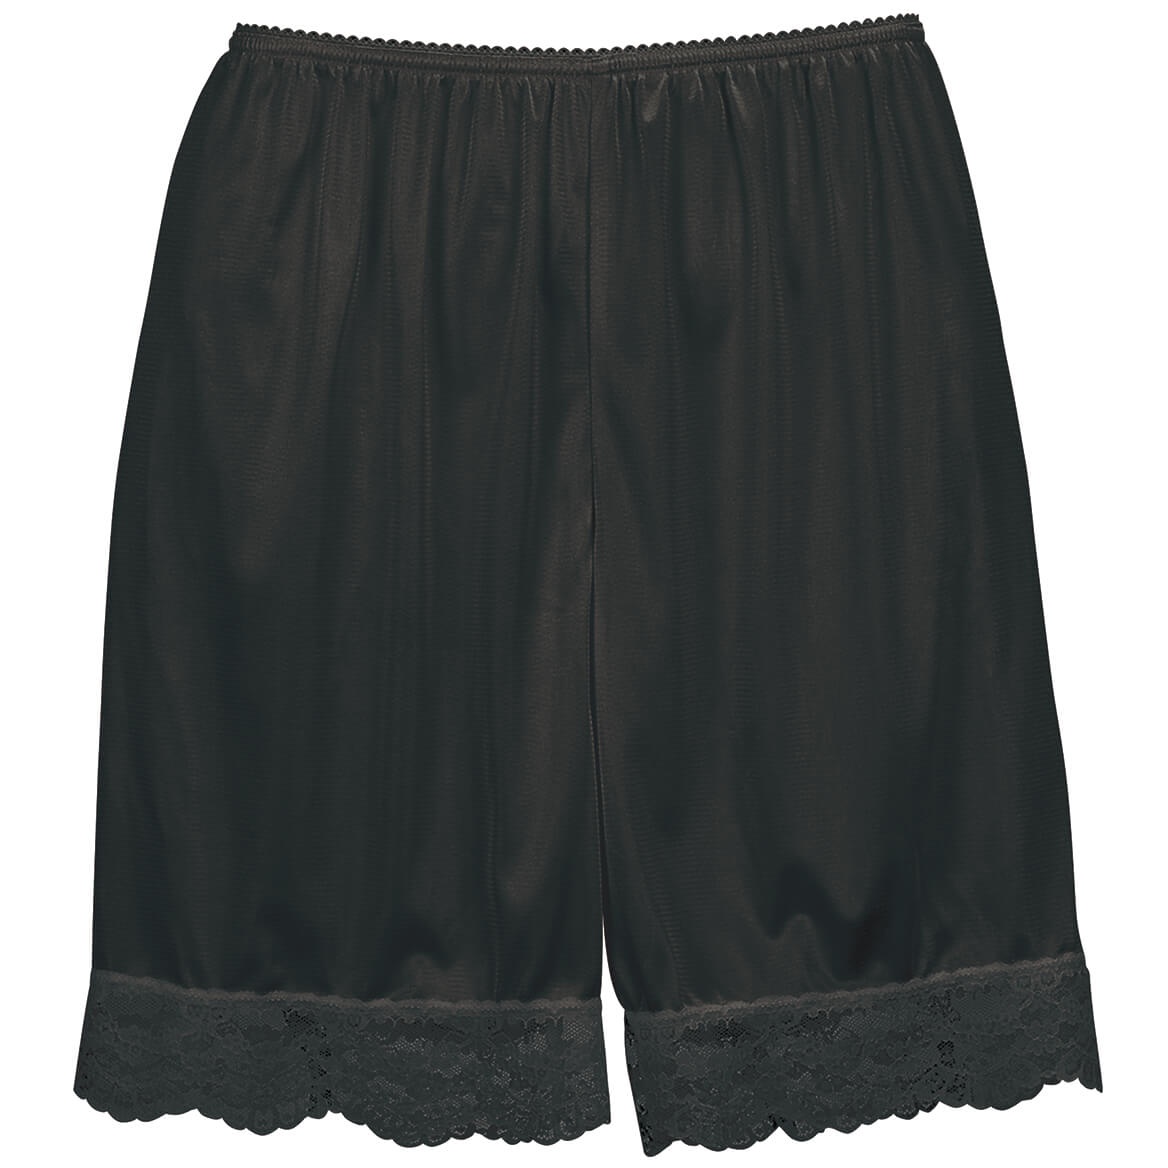 Lace Trimmed Pettipant - Short